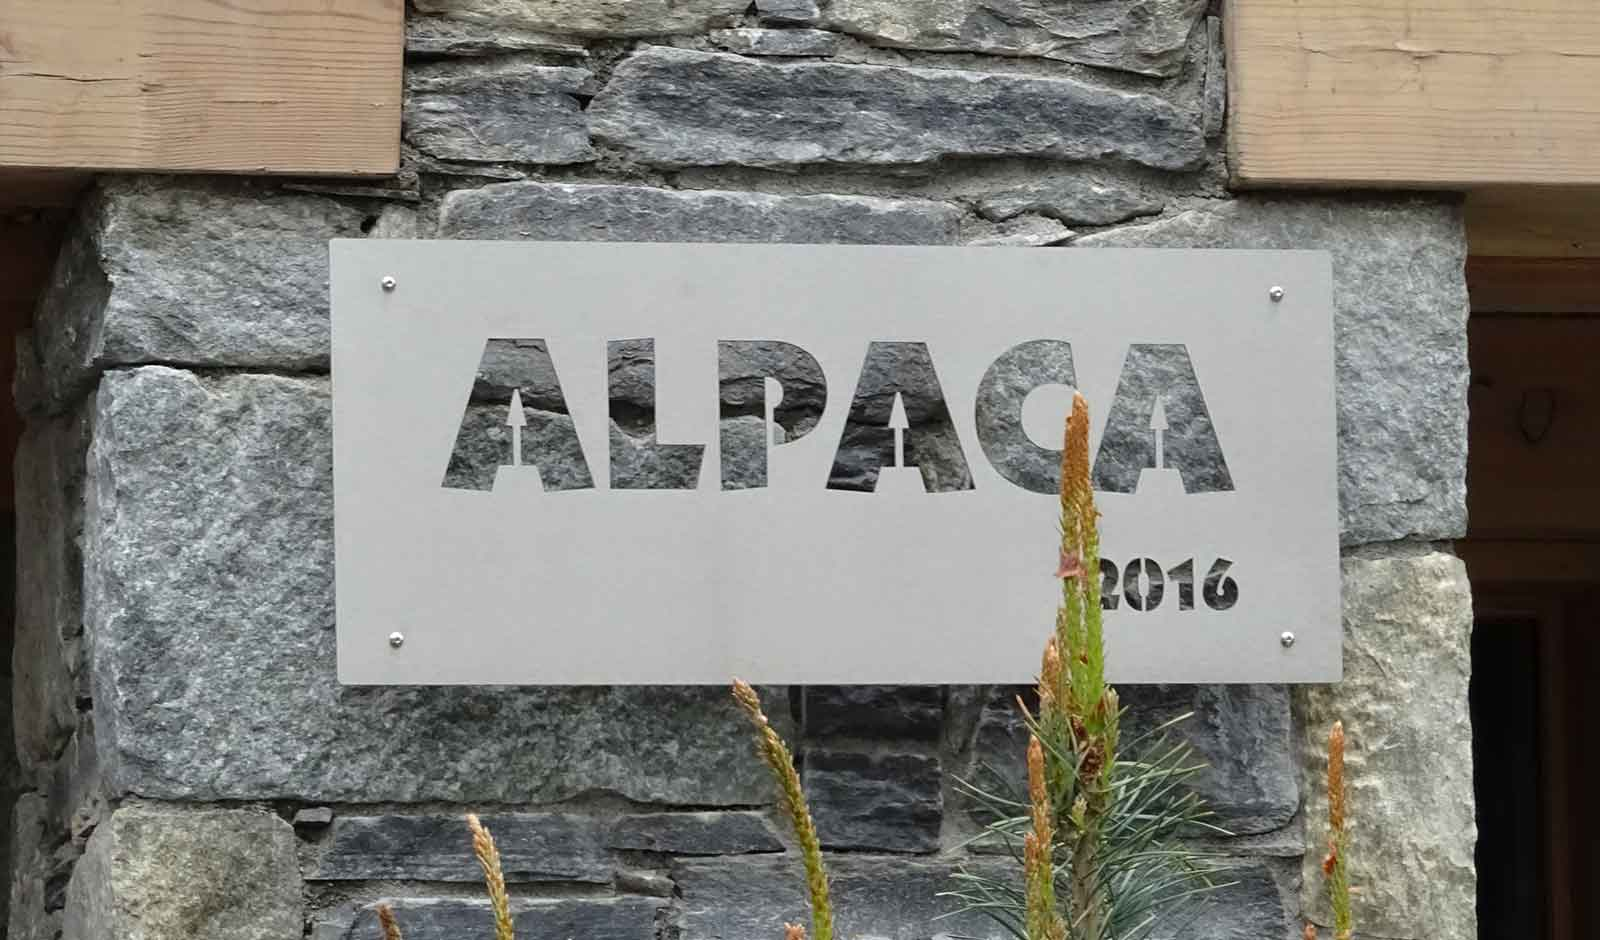 chalet-alpaca-1-2-atelier-crea-and-co-architecte-design-project-manager-meribel-savoie